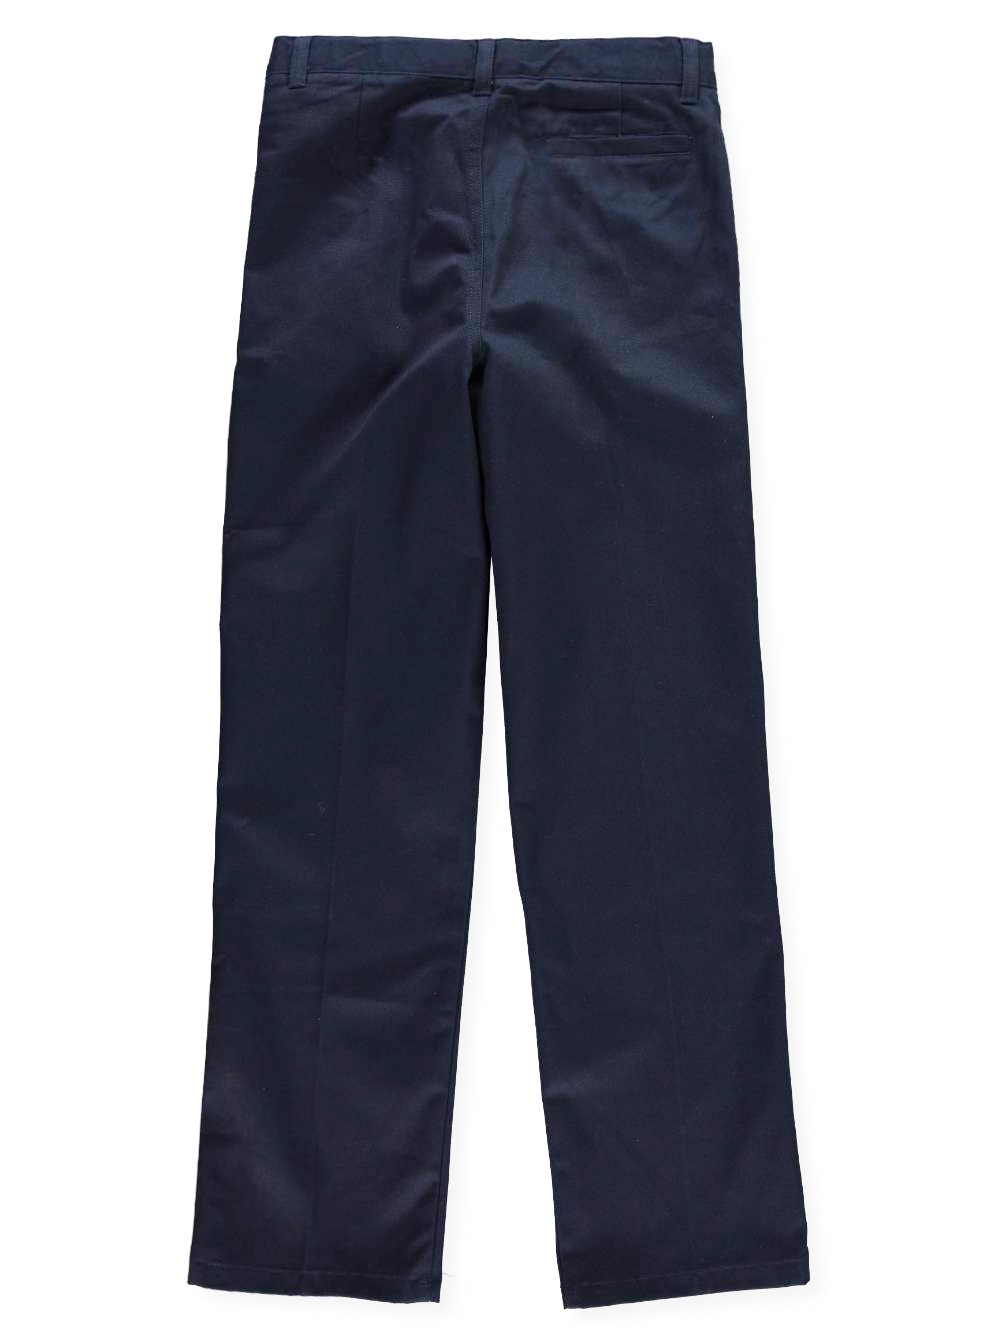 French Toast Big Boys' Pleated Wrinkle No More Double Knee Pants - navy, 20